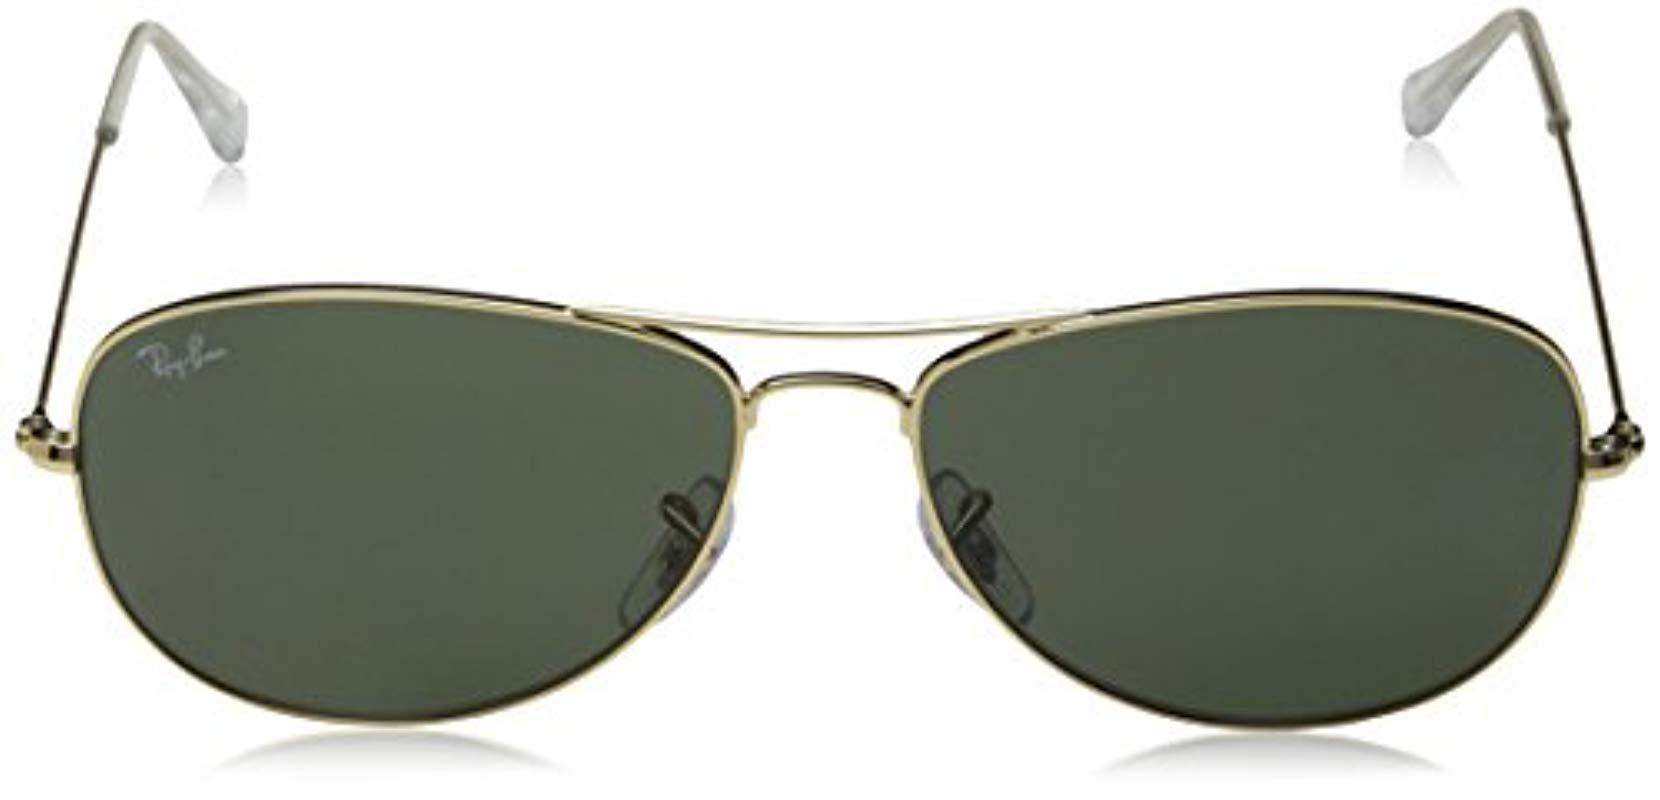 bff475e1706 ... coupon code for ray ban green rb3362 cockpit sunglasses for men lyst.  view fullscreen a4824